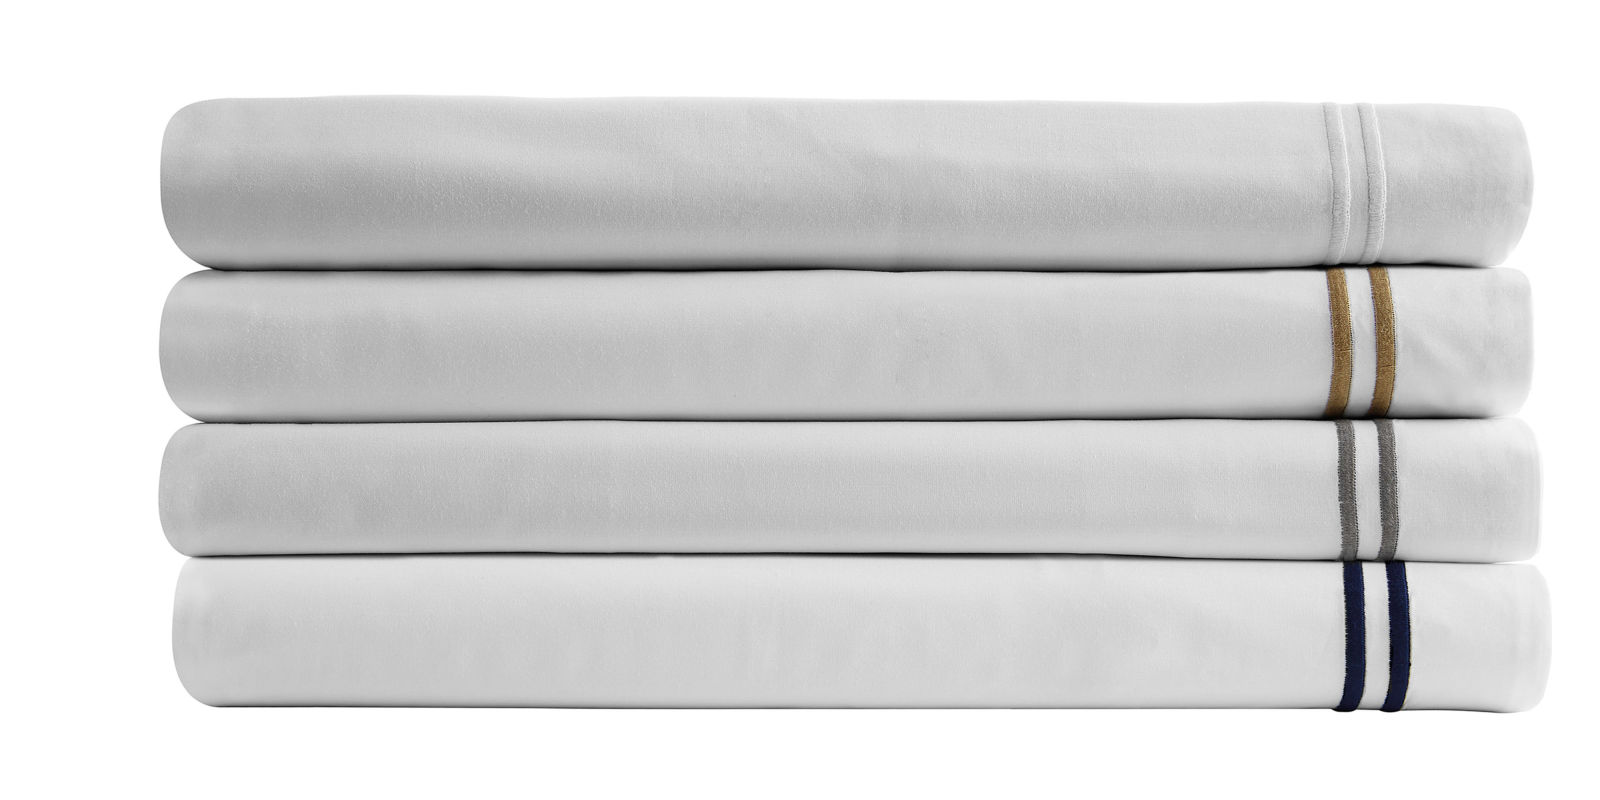 frette hotel classic sheet set review price and features